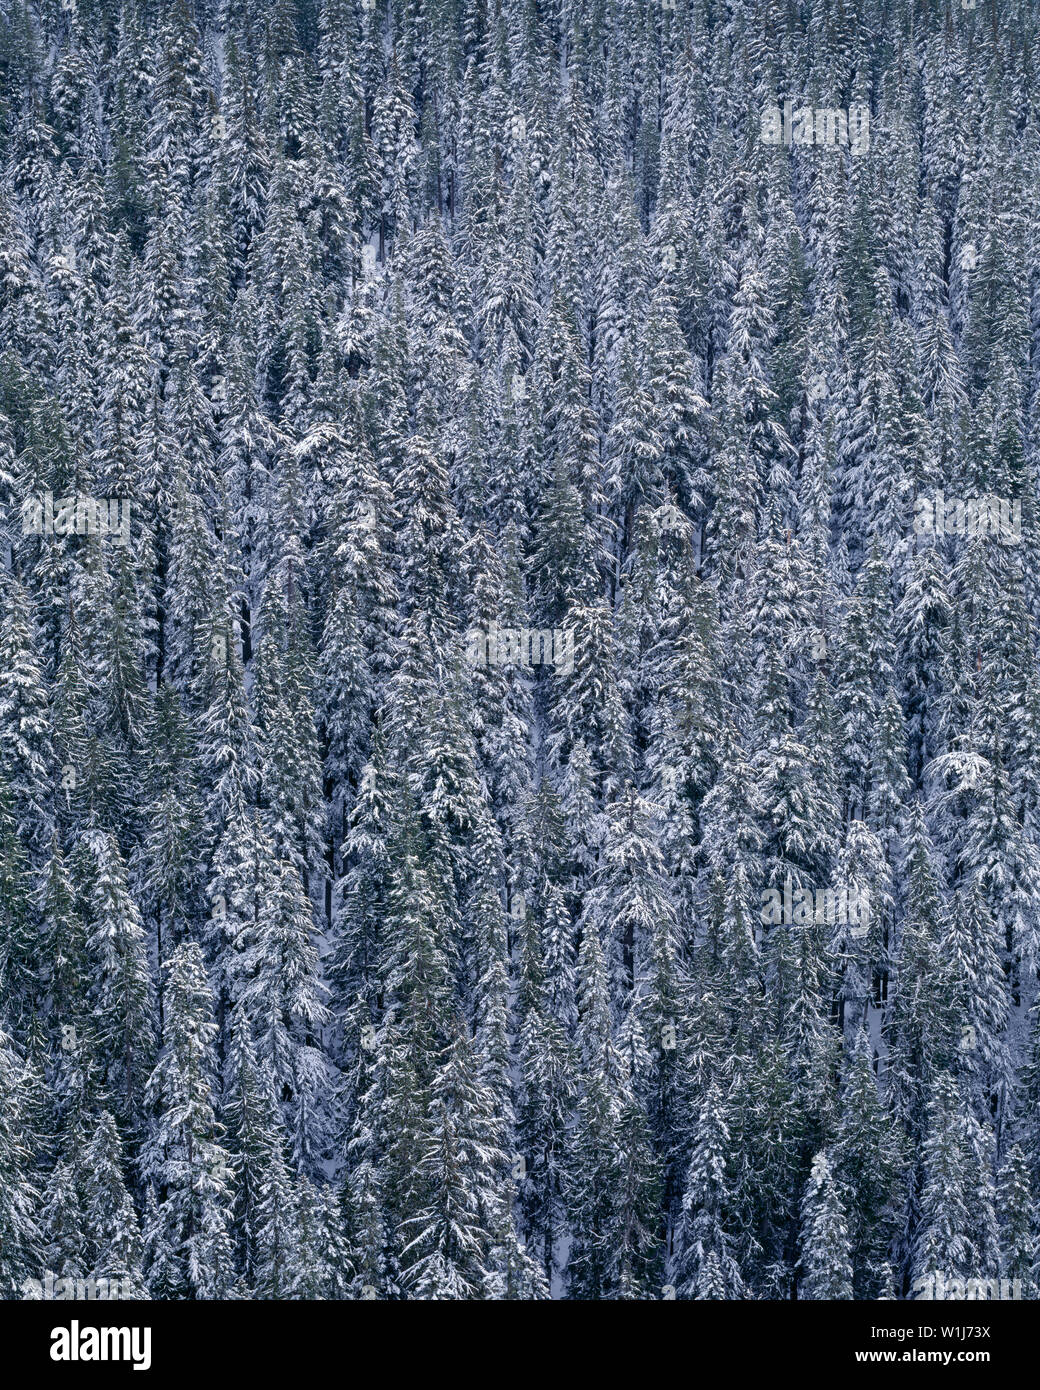 USA, Washington, Mt. Rainier National Park, Winter snow clings to conifer forest above Paradise River. - Stock Image